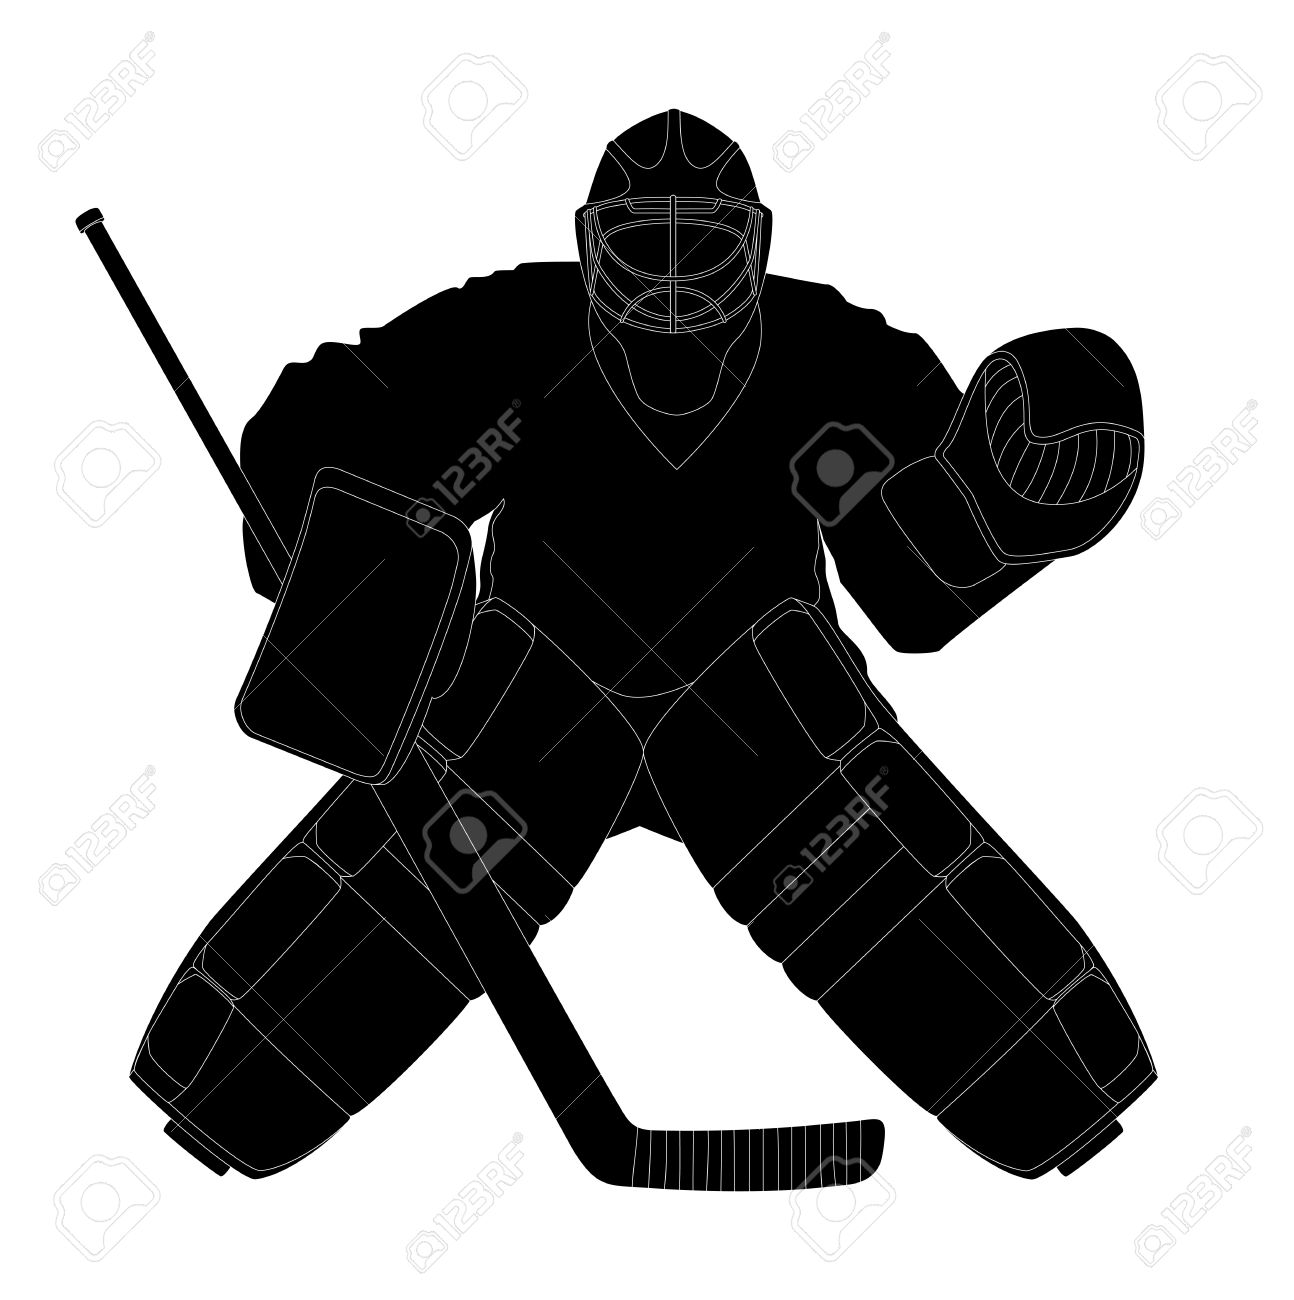 Vector Illustration Silhouette Hockey Goalie Royalty Free Cliparts